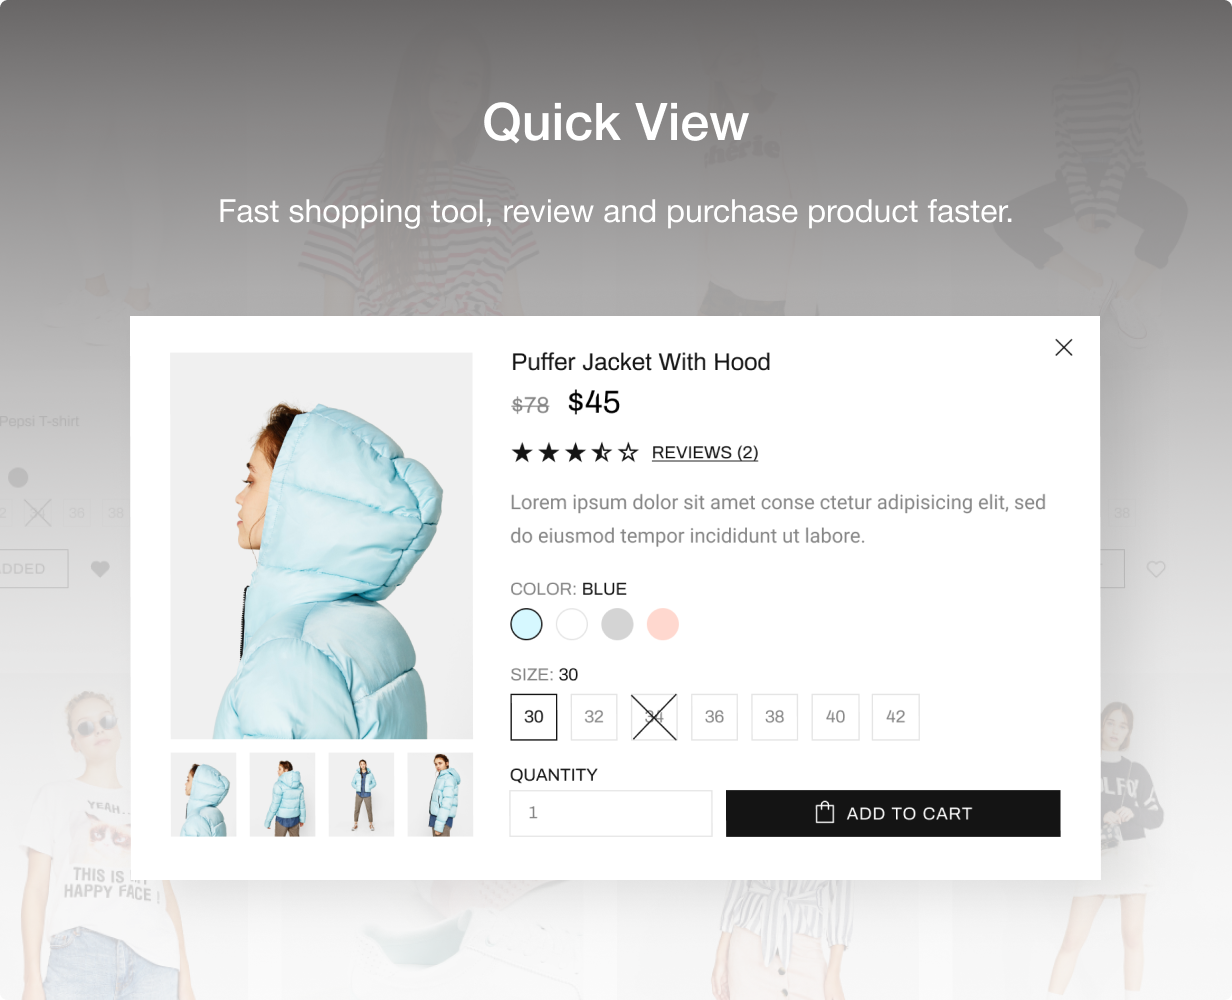 14 quick view - Shella - Multipurpose Shopify theme, fastest with the banner builder